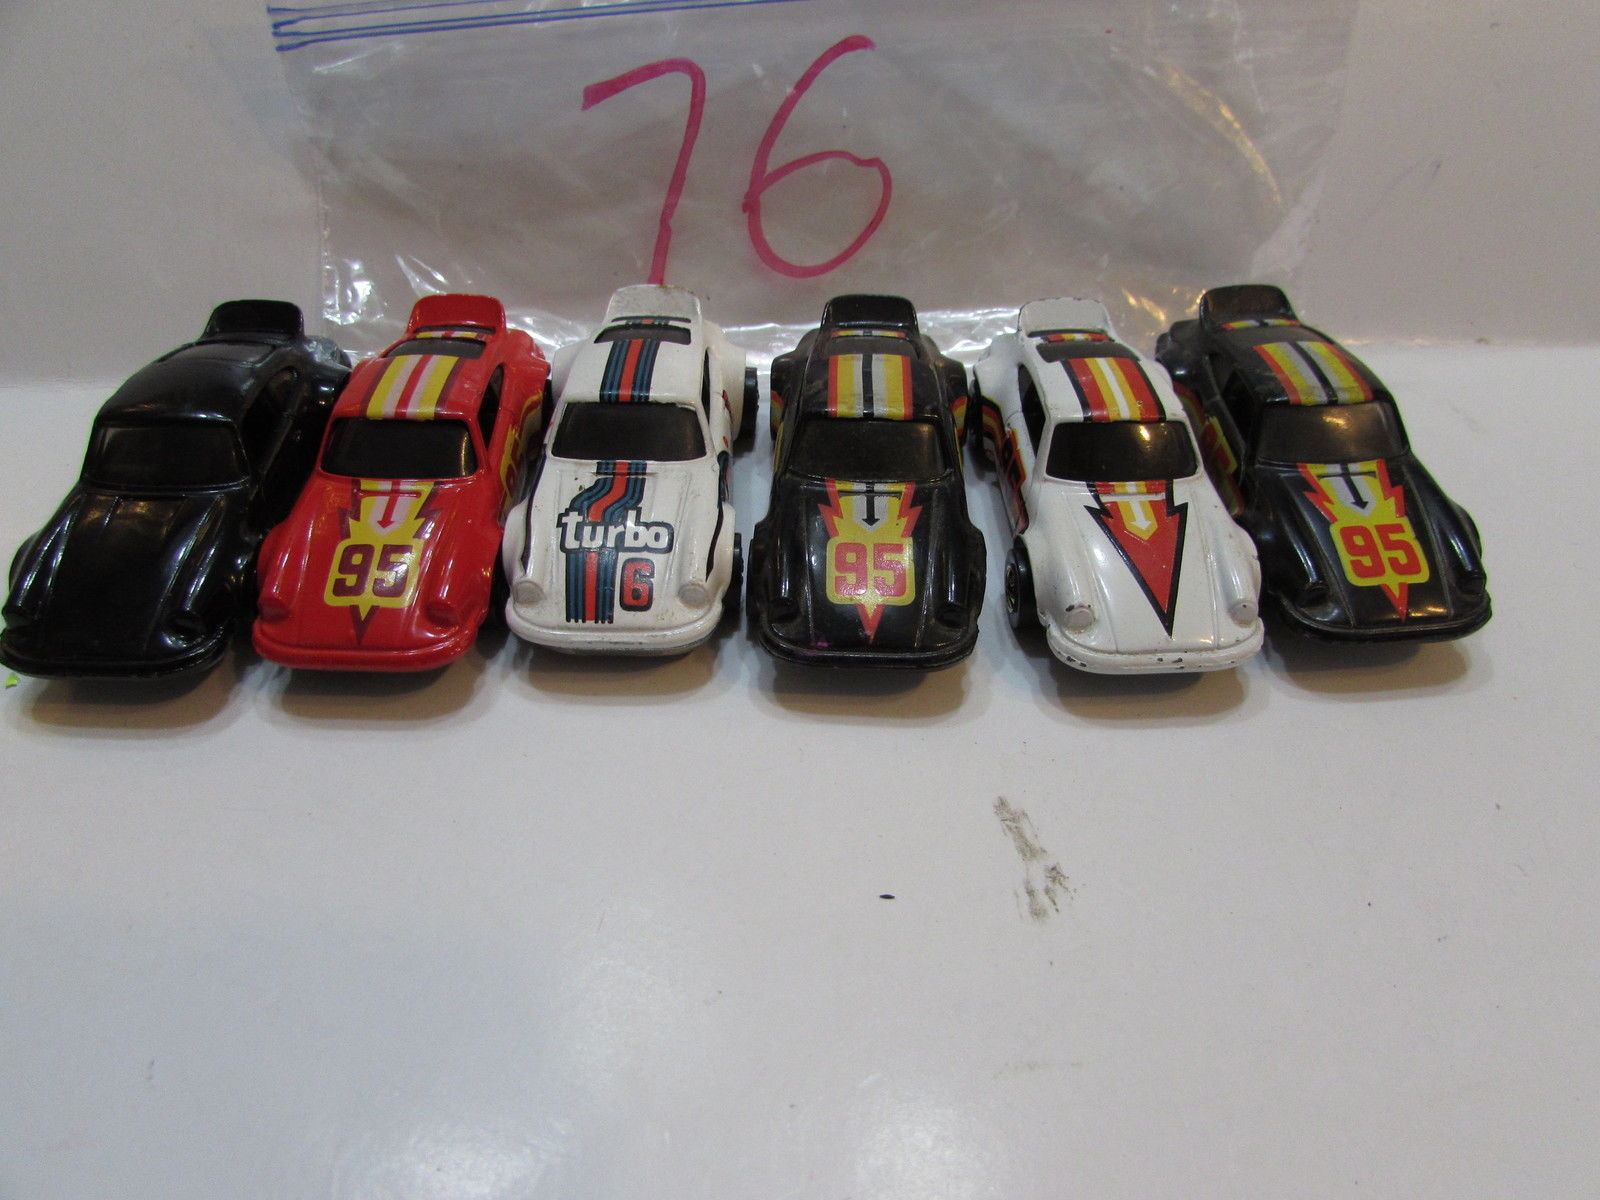 HOT WHEELS LOT OF 6 PORSCHE P 911 TURBO HOT ONES 1974 HONG KONG / MALAYSIA BASE